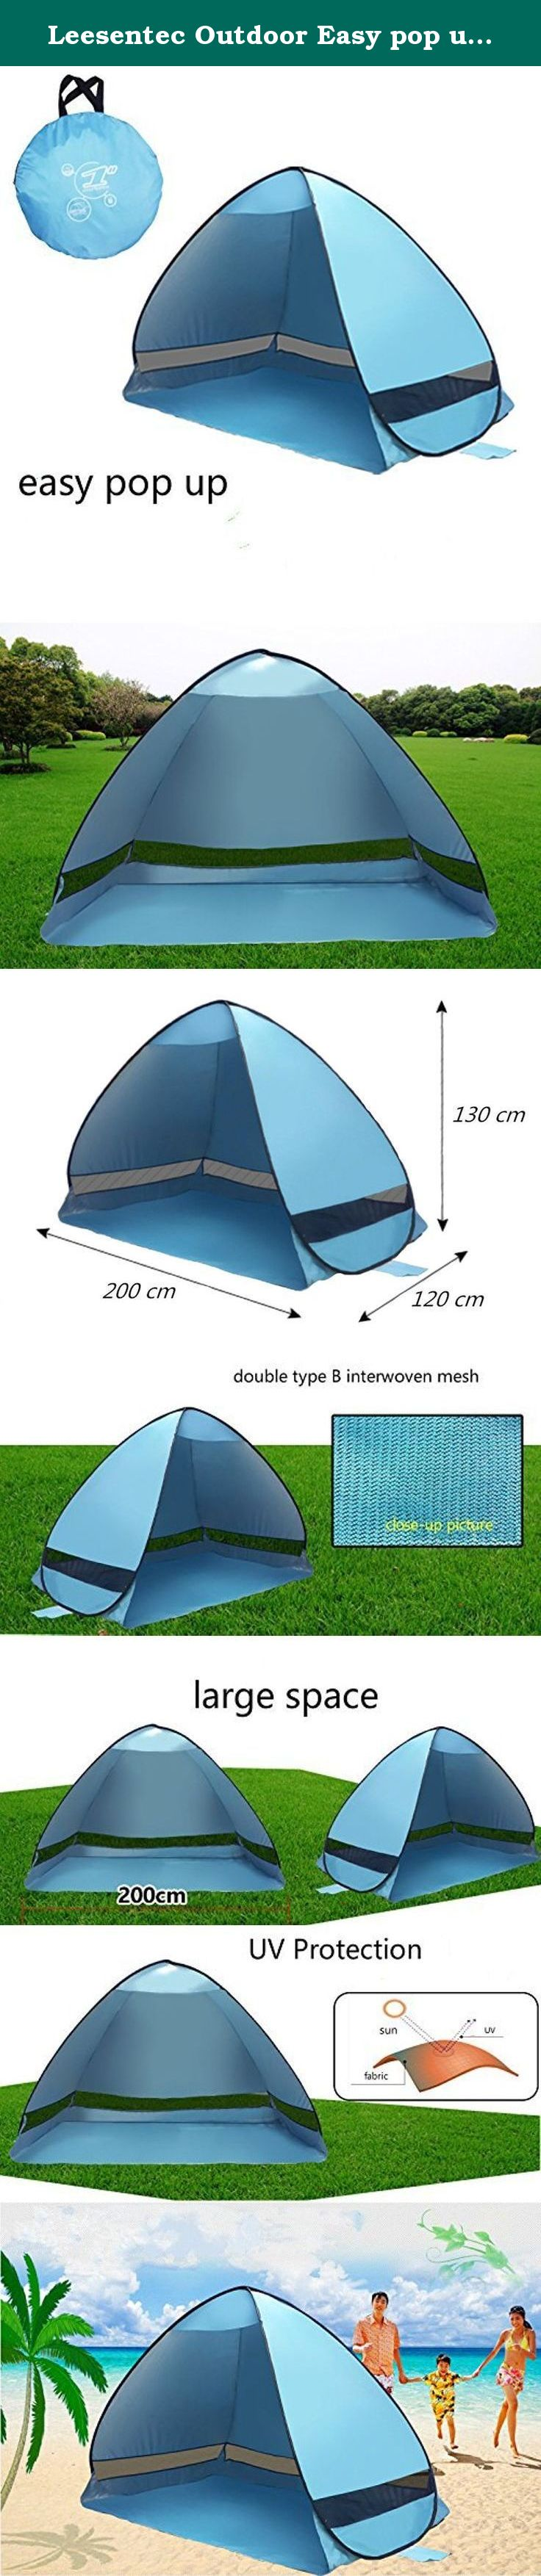 Leesentec Outdoor Easy pop up Beach Tent Portable Cabana Sun Shade Protective Anti Uv Sport Shelter  sc 1 st  Pinterest & Leesentec Outdoor Easy pop up Beach Tent Portable Cabana Sun Shade ...